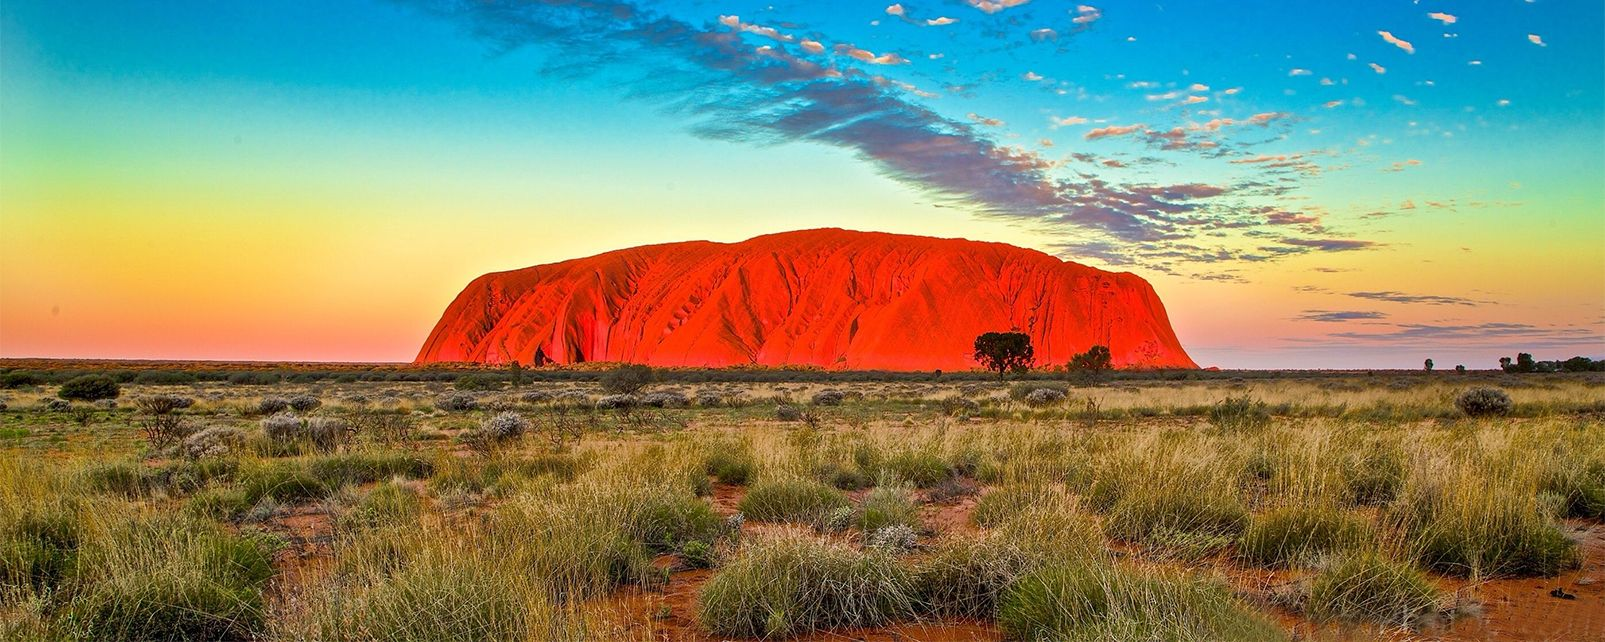 The Red Centre Ayers Rock The Northern Territory Australia